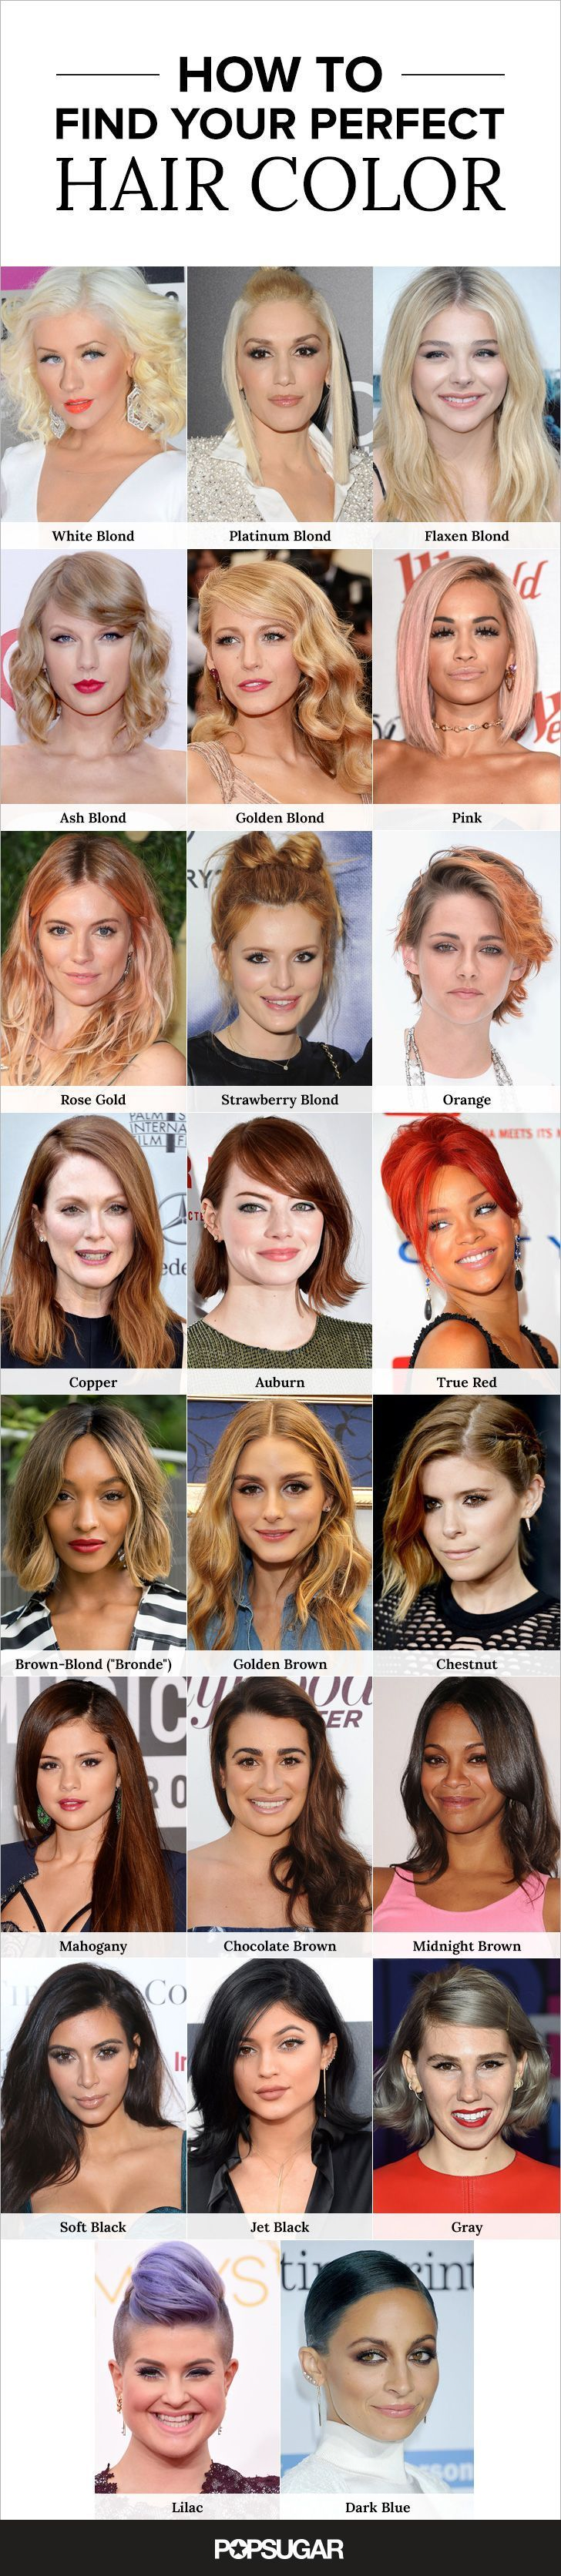 This celebrity-packed guide makes it easy to find your perfect hair color!